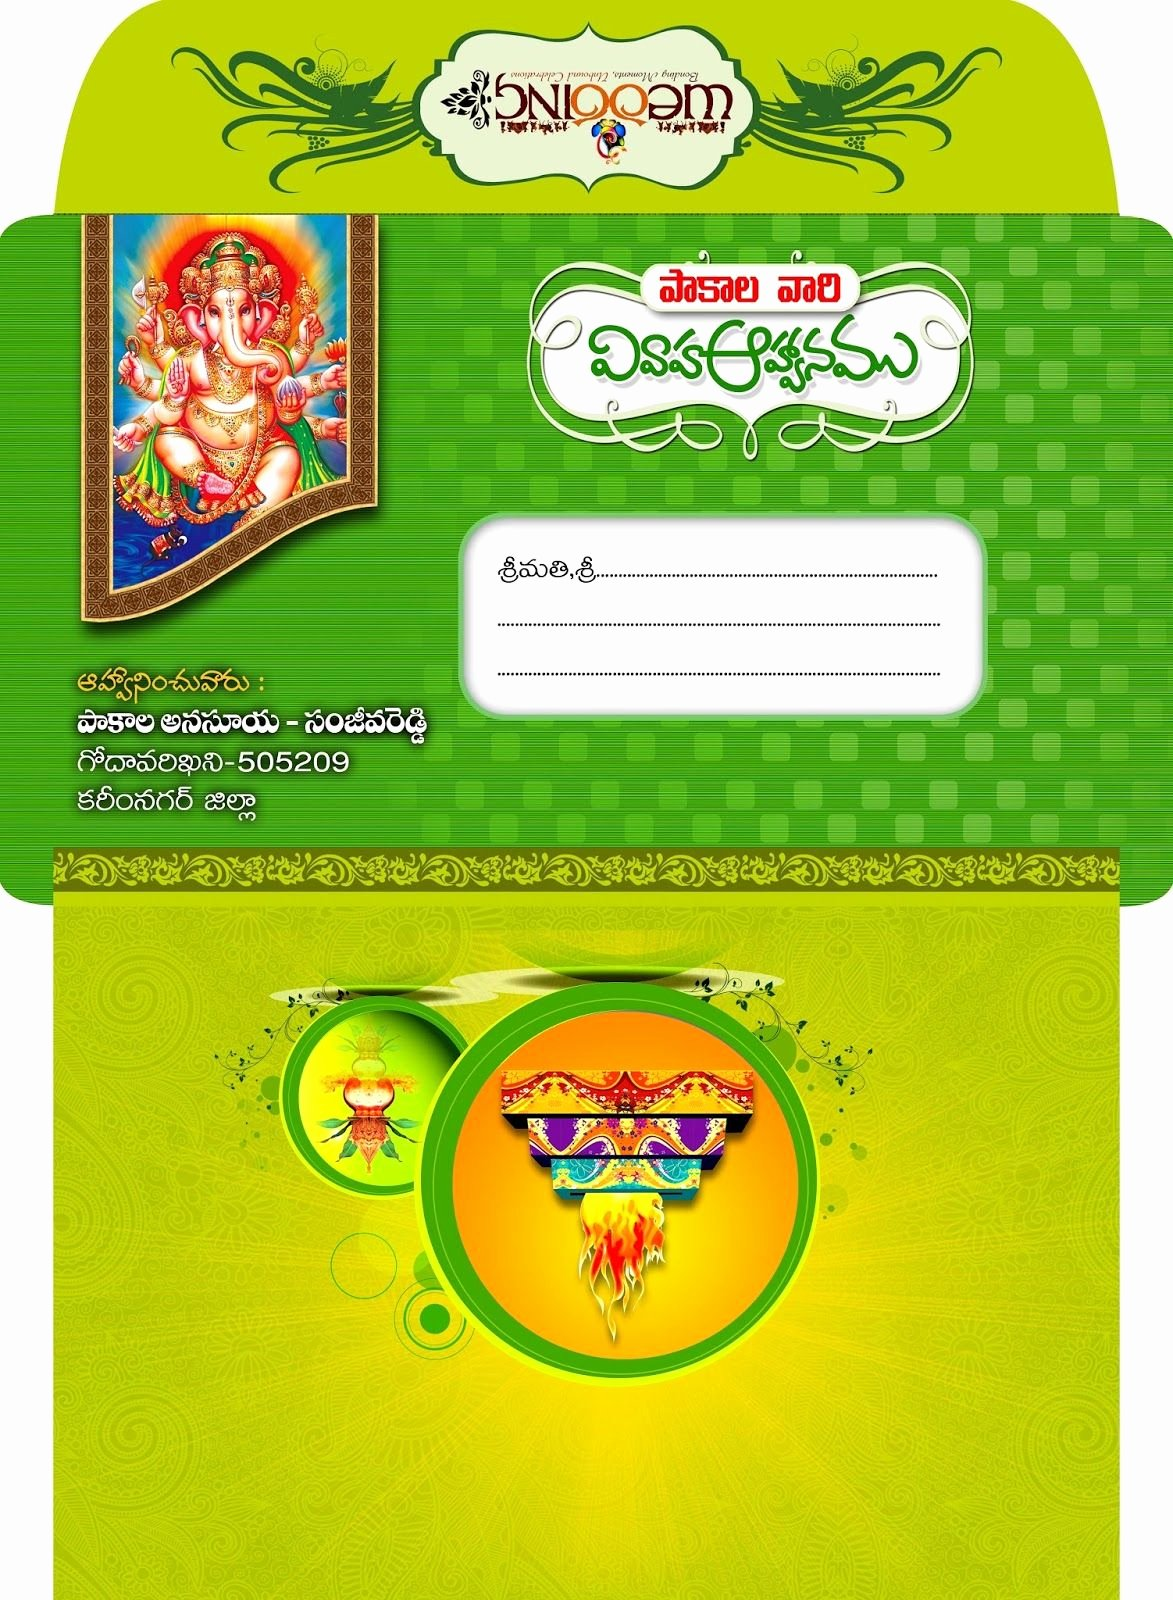 Photoshop Birthday Invitation Template Awesome Birthday Invitation Templates Shop — Birthday